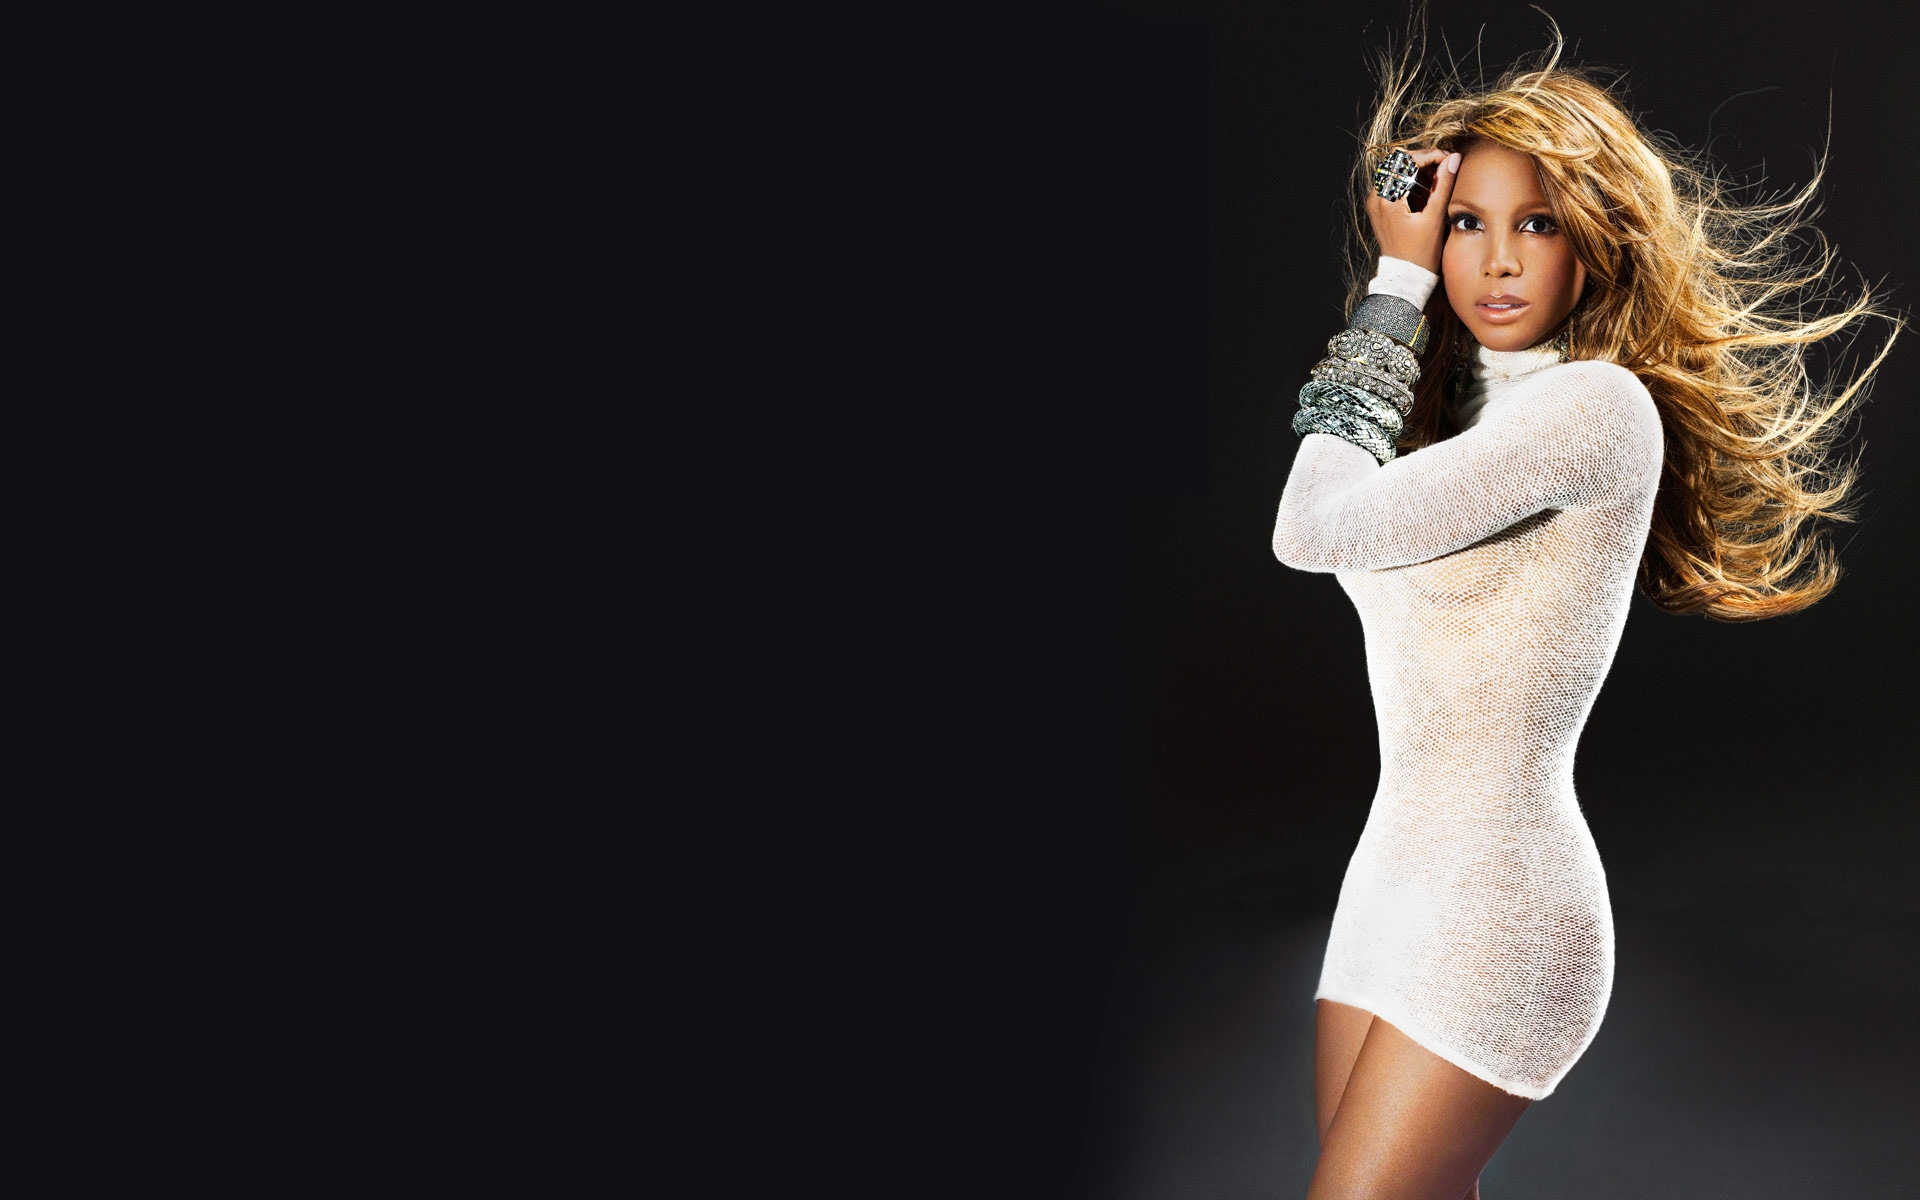 Toni Braxton  hd wallpaper Wallpaper